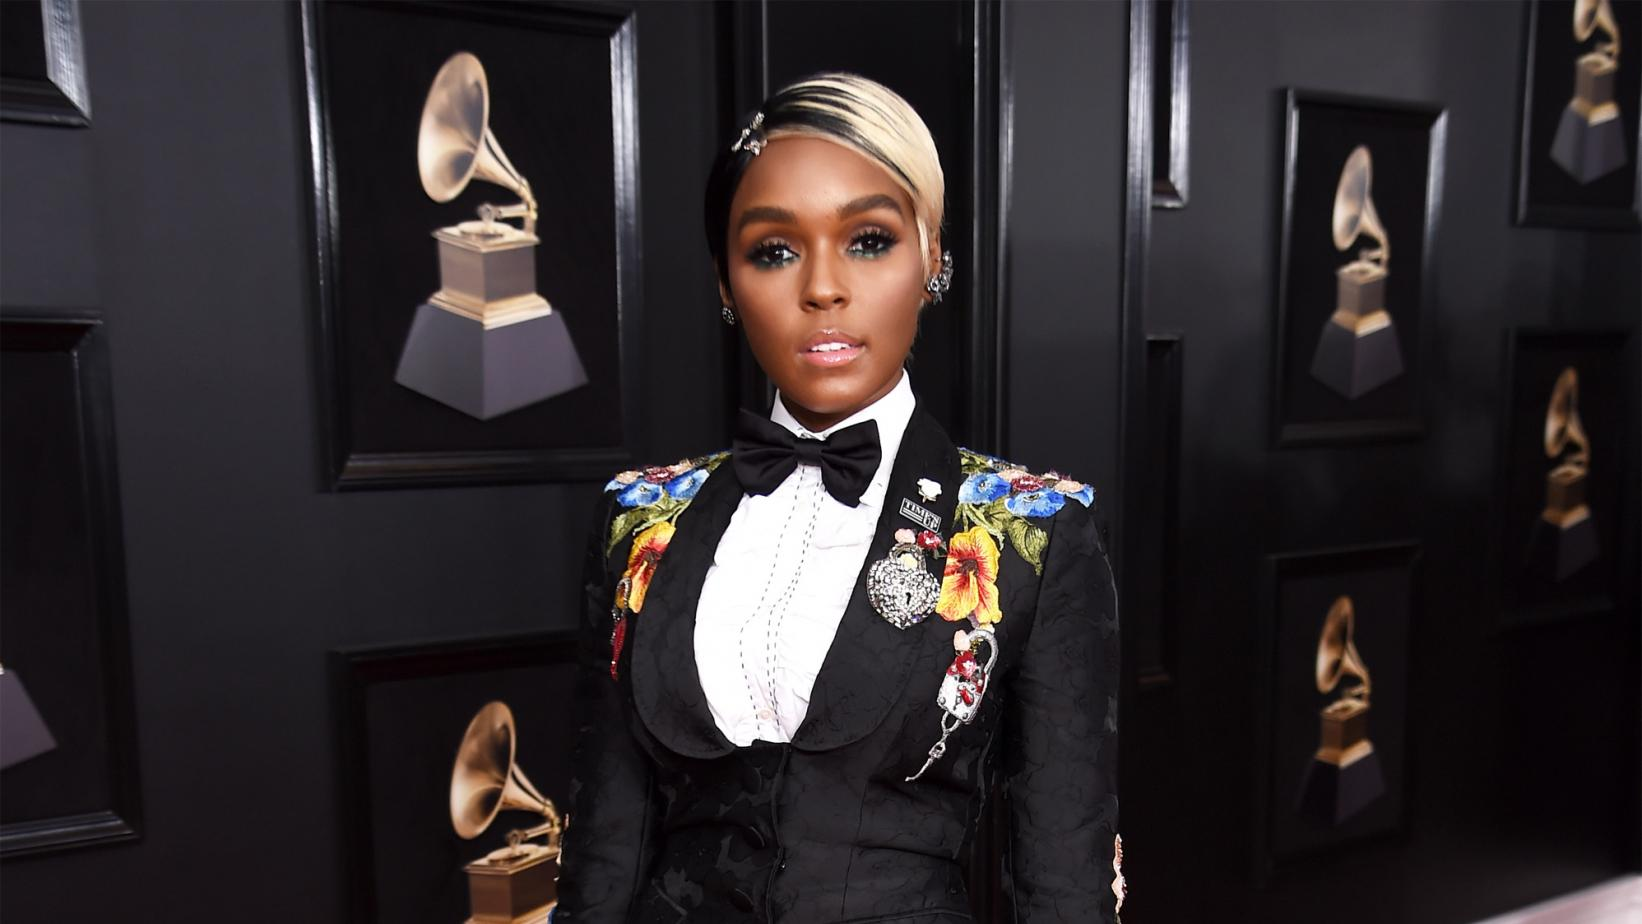 Janelle Monaé at the 60th GRAMMY Awards in 2018